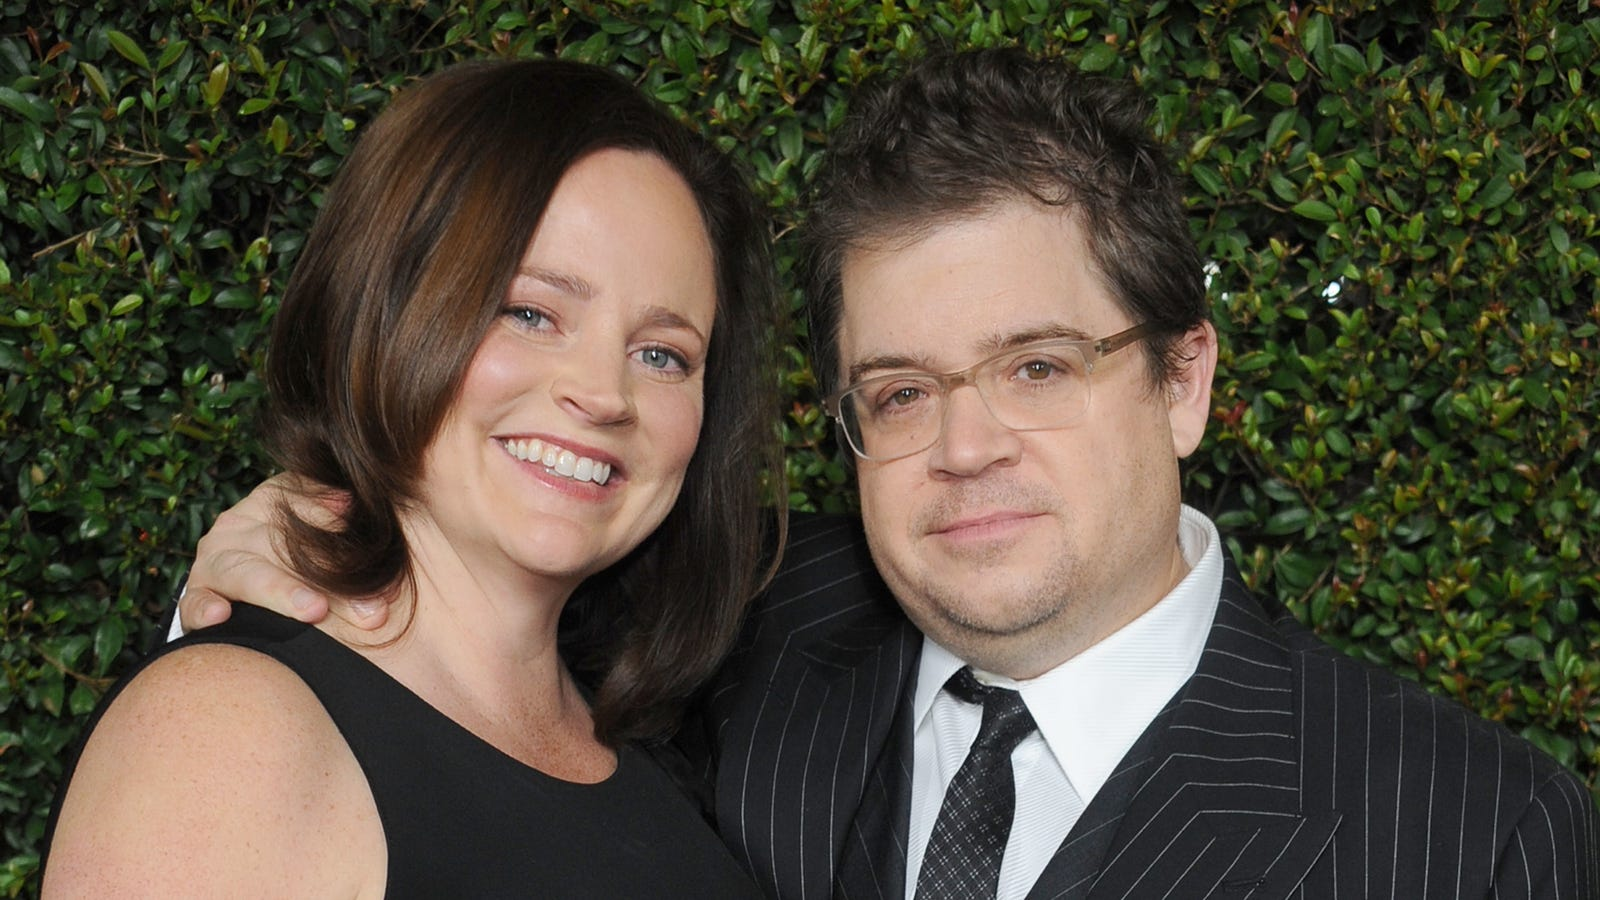 Tonight's Jeopardy! had a lovely, covert tribute to Michelle McNamara and Patton Oswalt